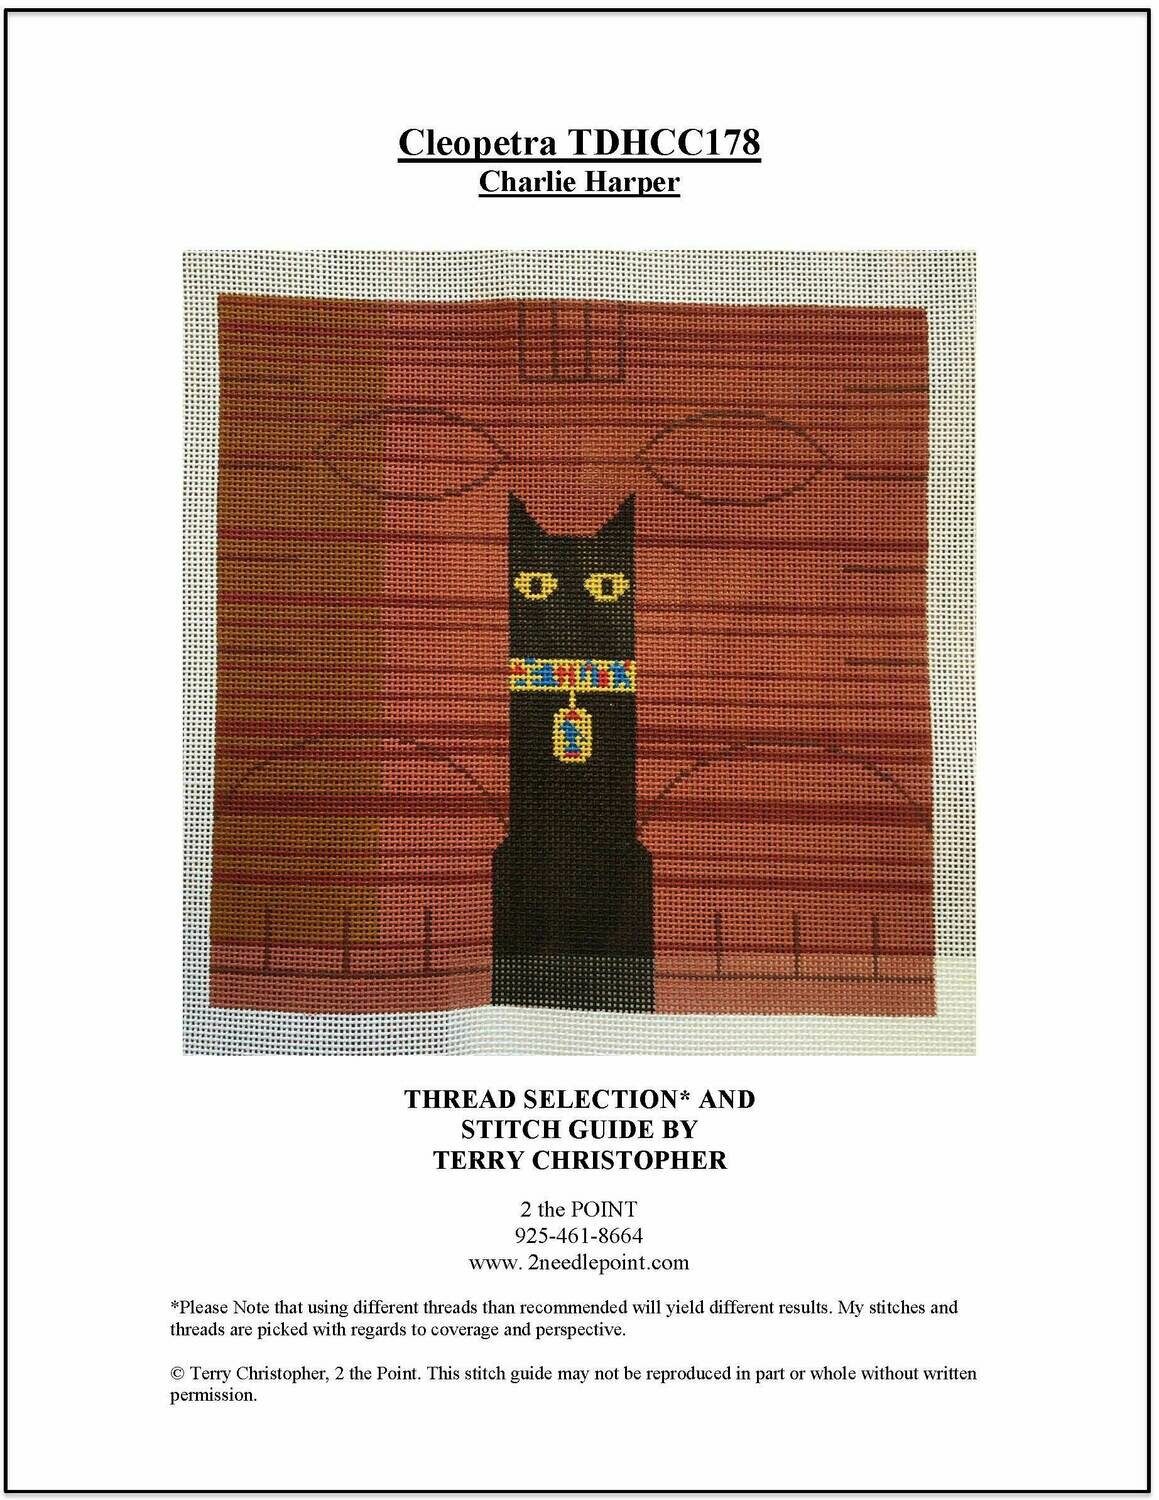 Charlie Harper/Meredith Collection, Cleopetra TDHCC178